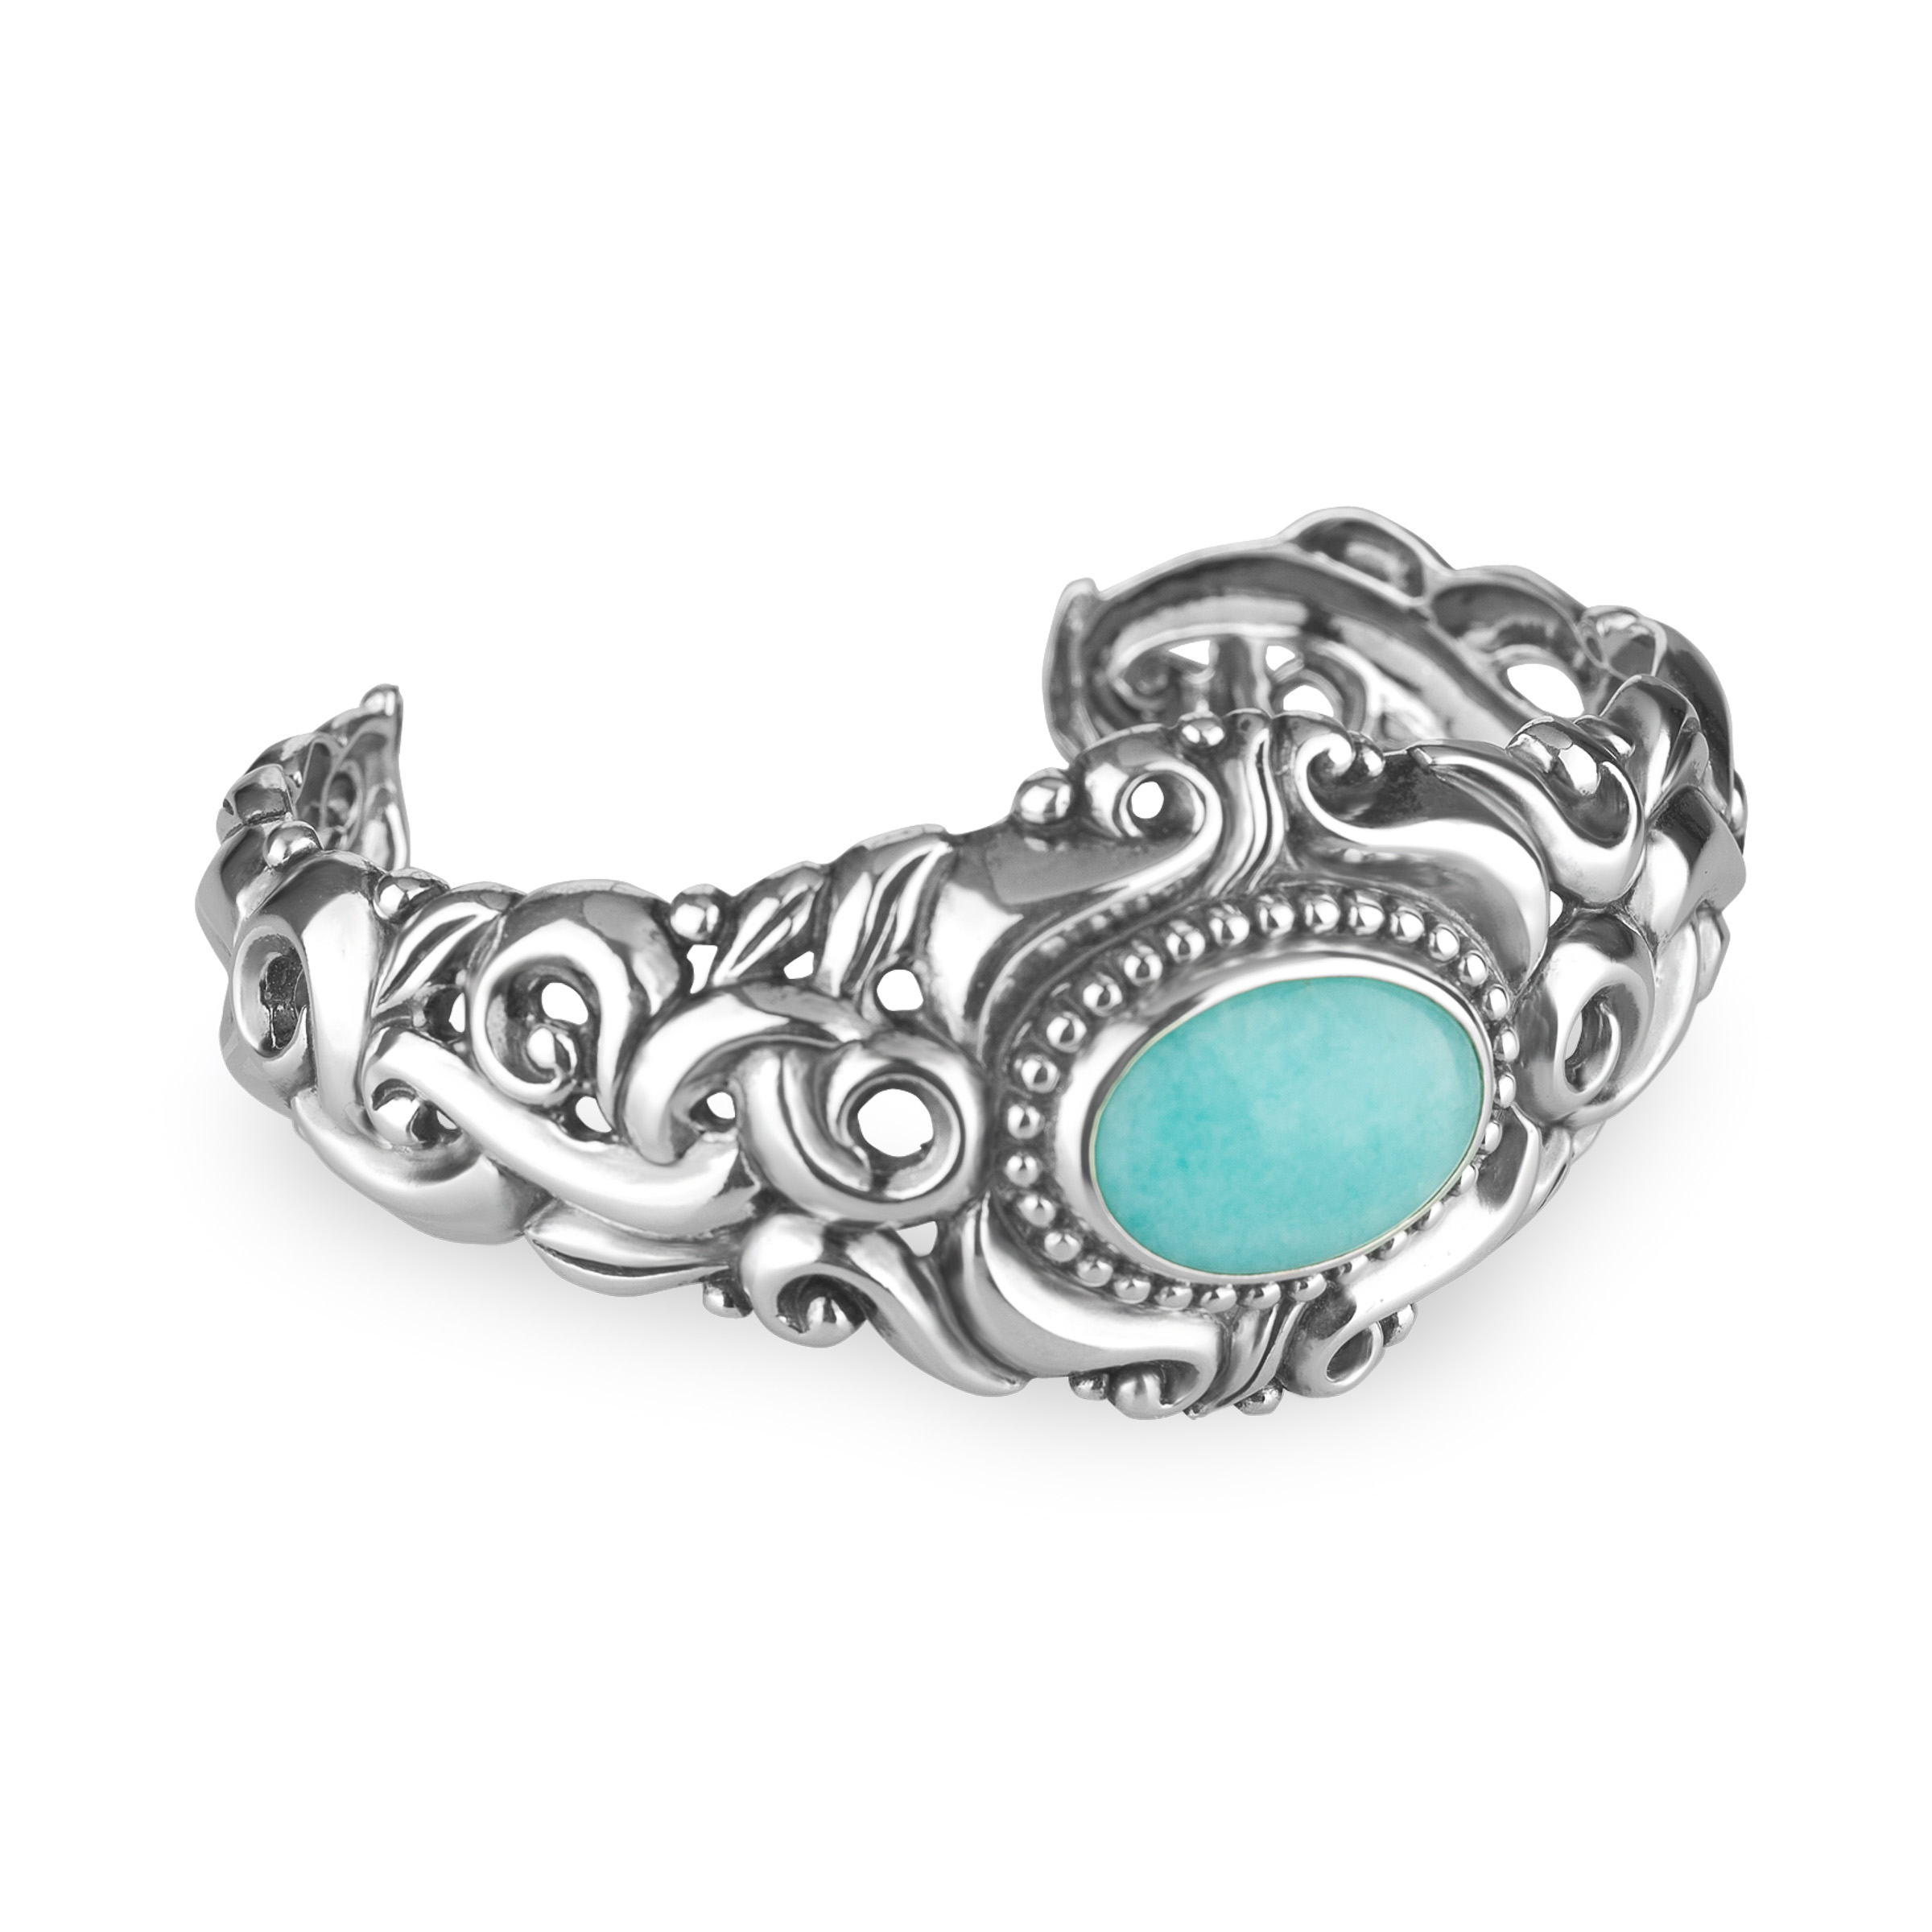 Carolyn Pollack Amazonite Cuff Bracelet in Sterling Silver